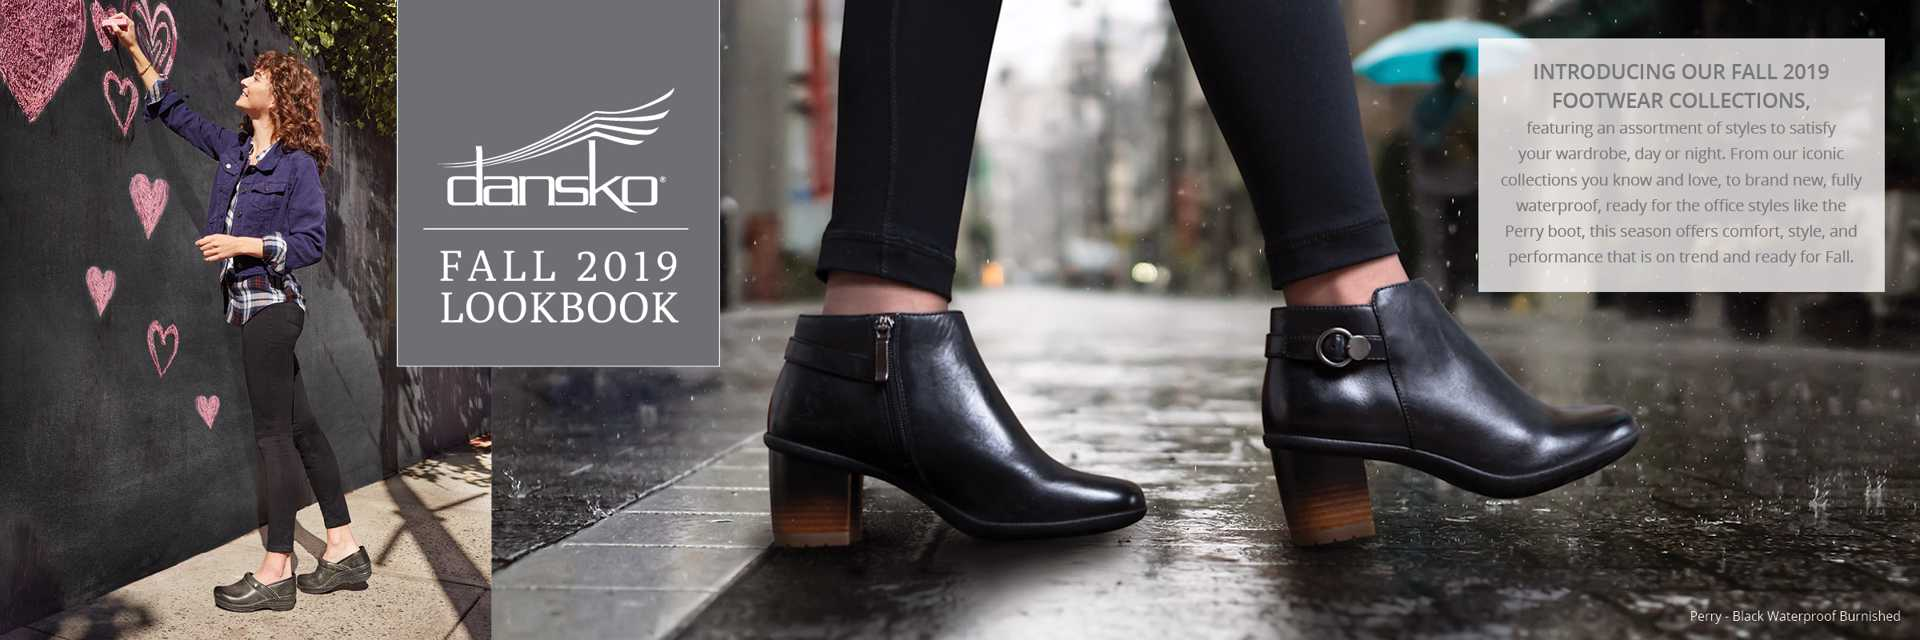 Dansko Fall 2019 Lookbook - Charcoal Distressed